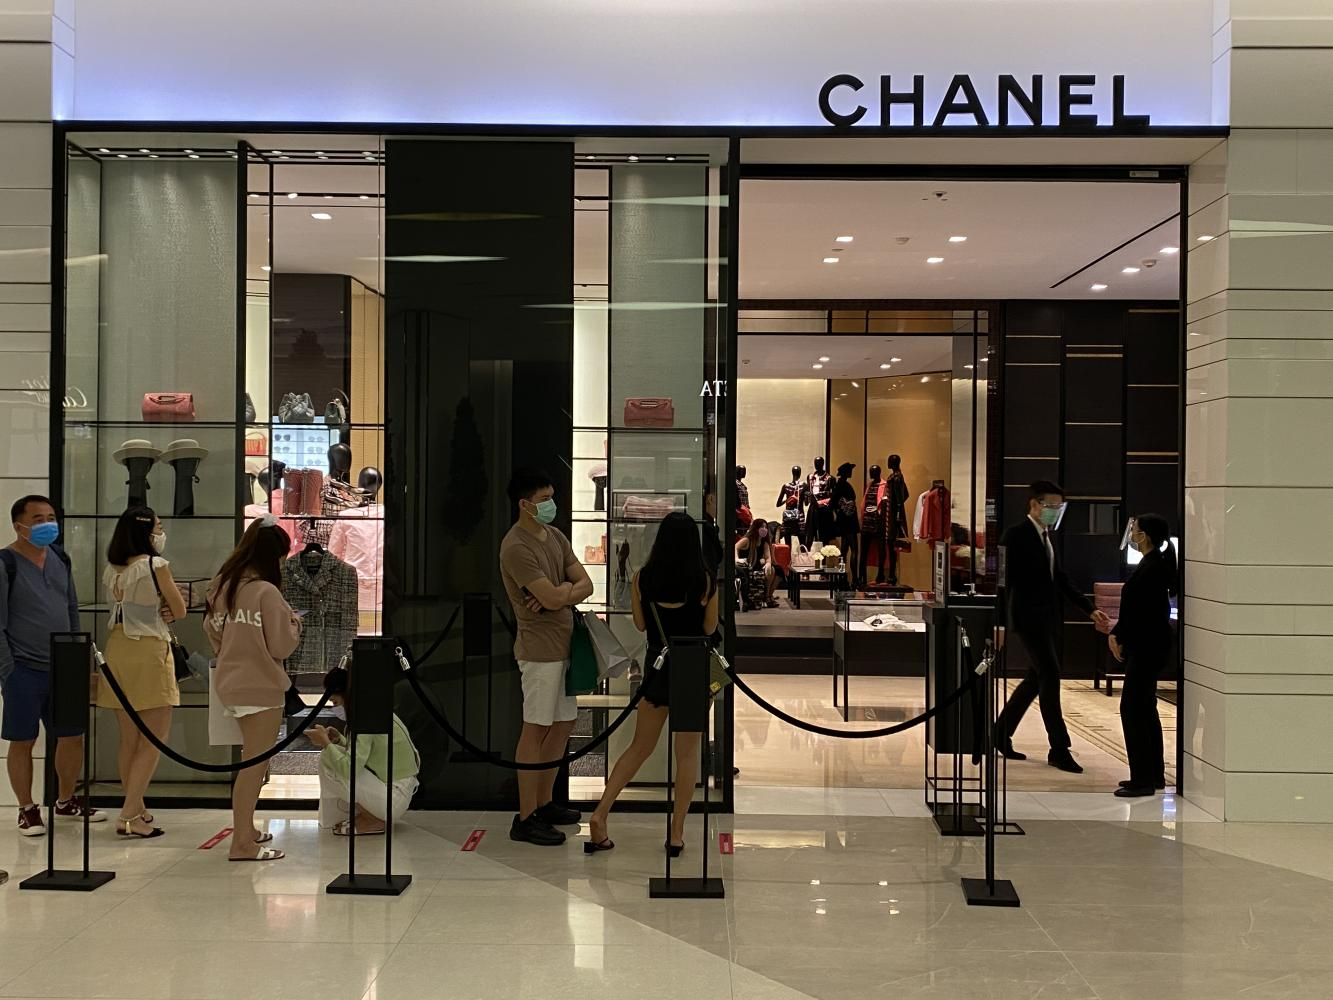 Customers wear face masks while waiting in a queue outside the Chanel store at Siam Paragon. Tourists from CLMV nations account for many of the foreign visitors at the mall.Bangkok Post